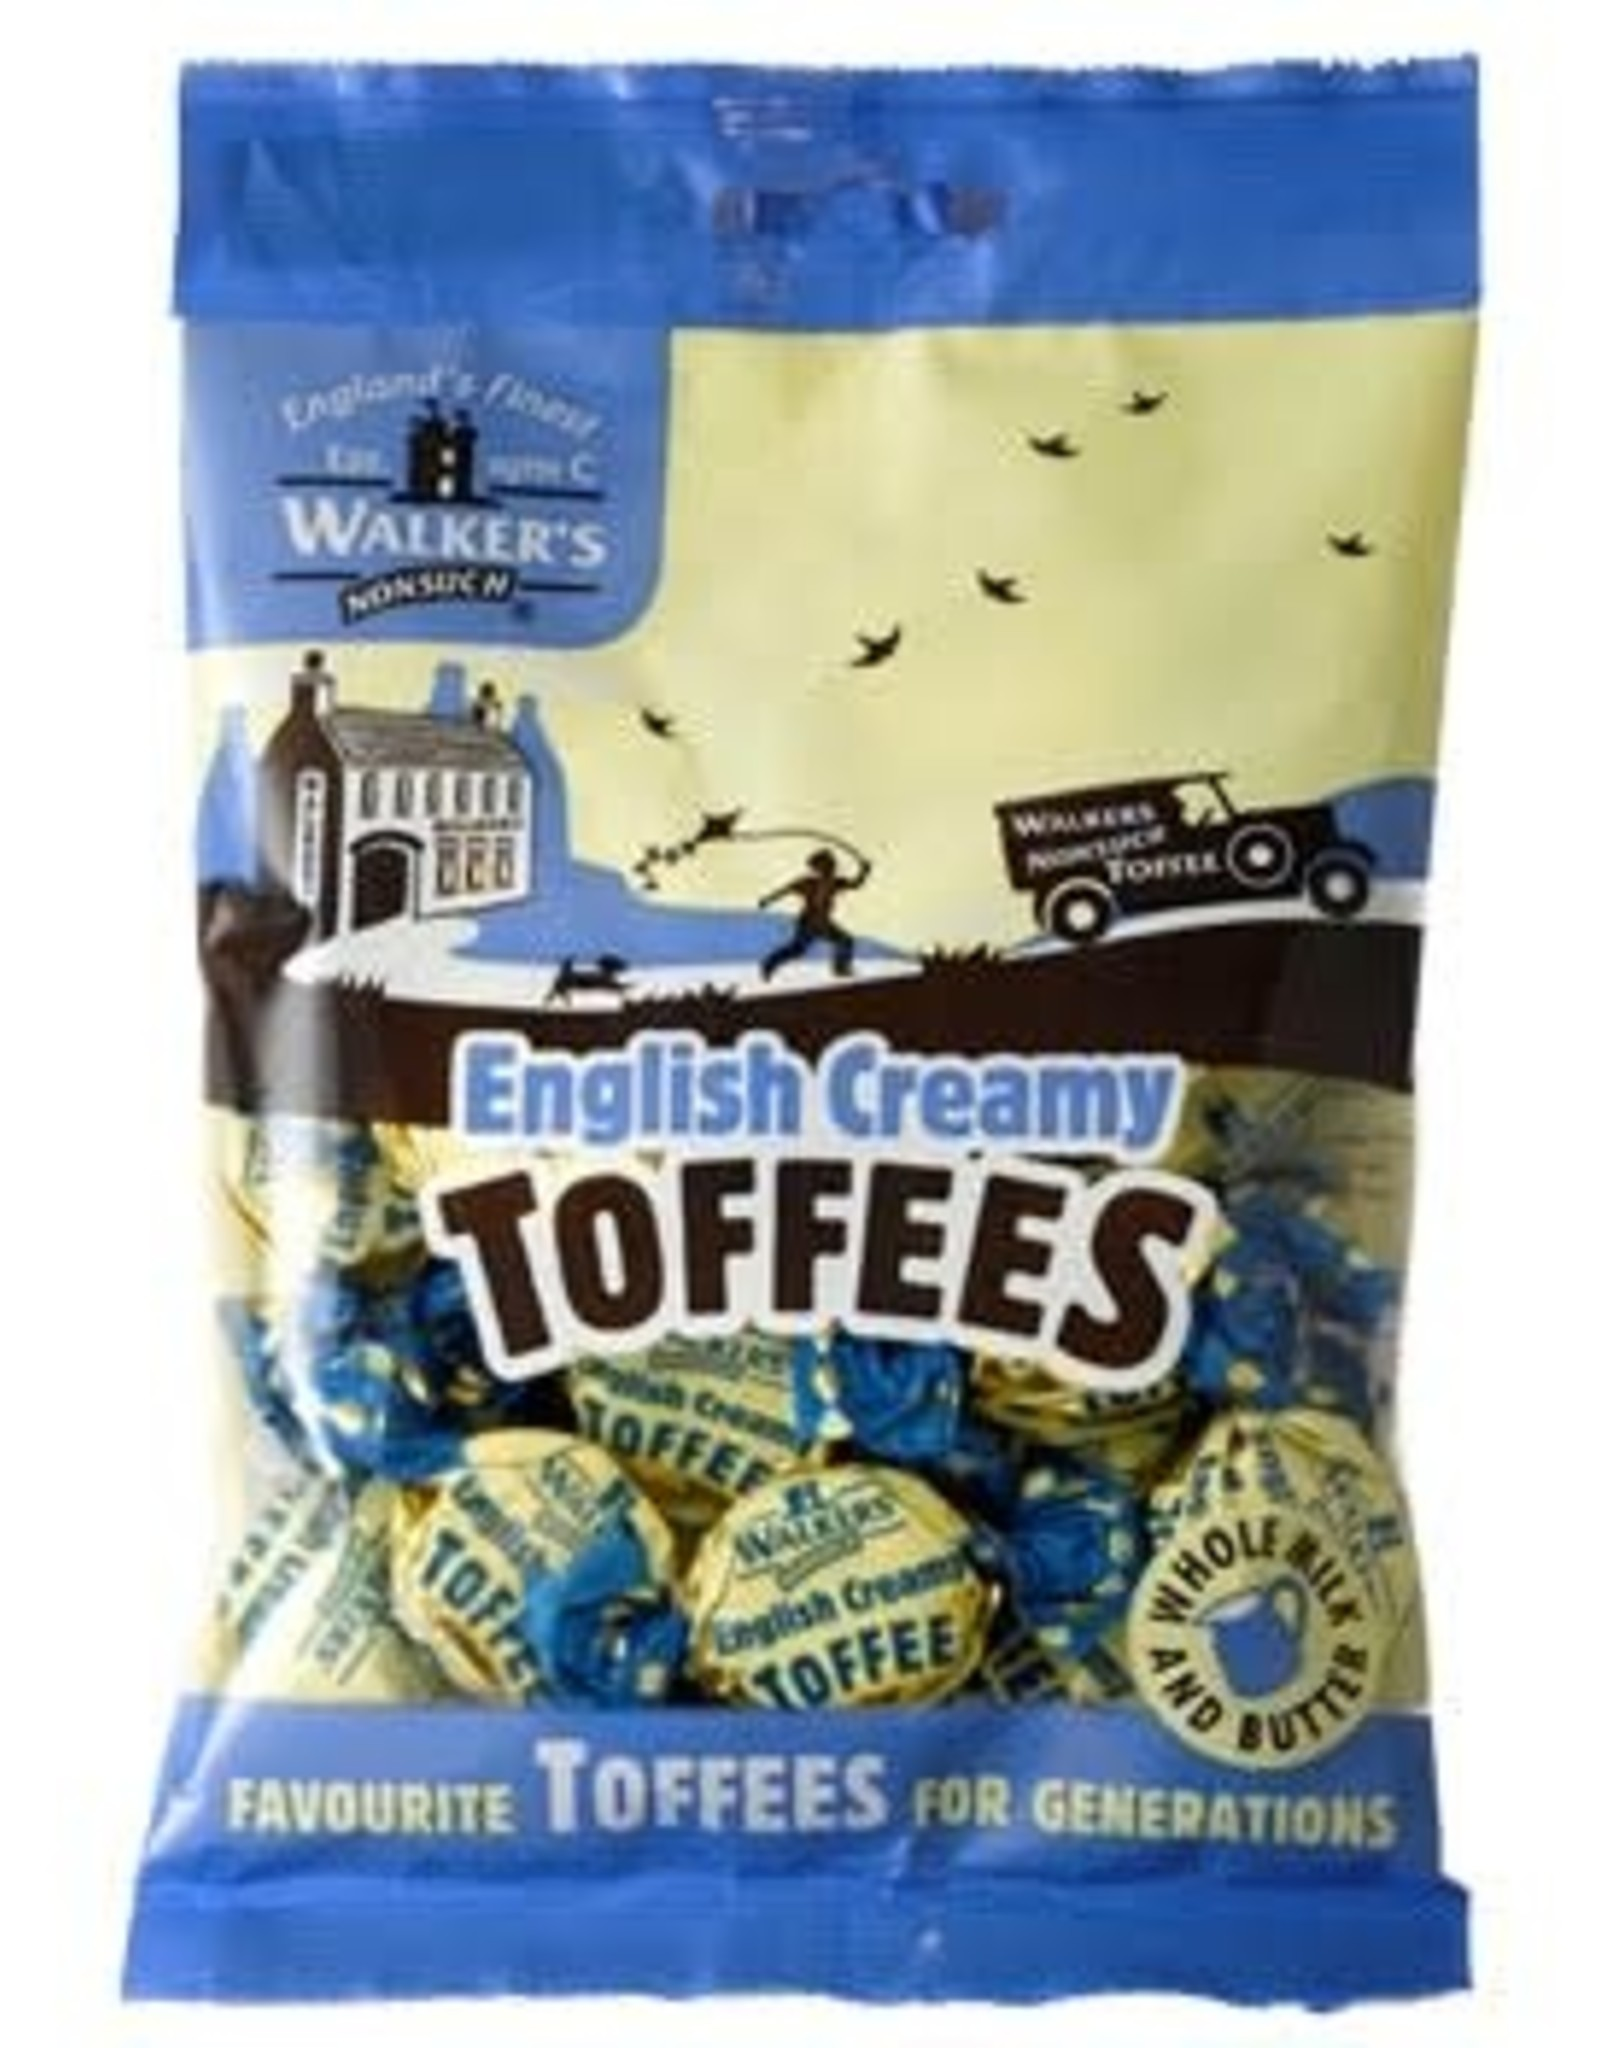 Walker's Walker's English Creamy Toffees 150g